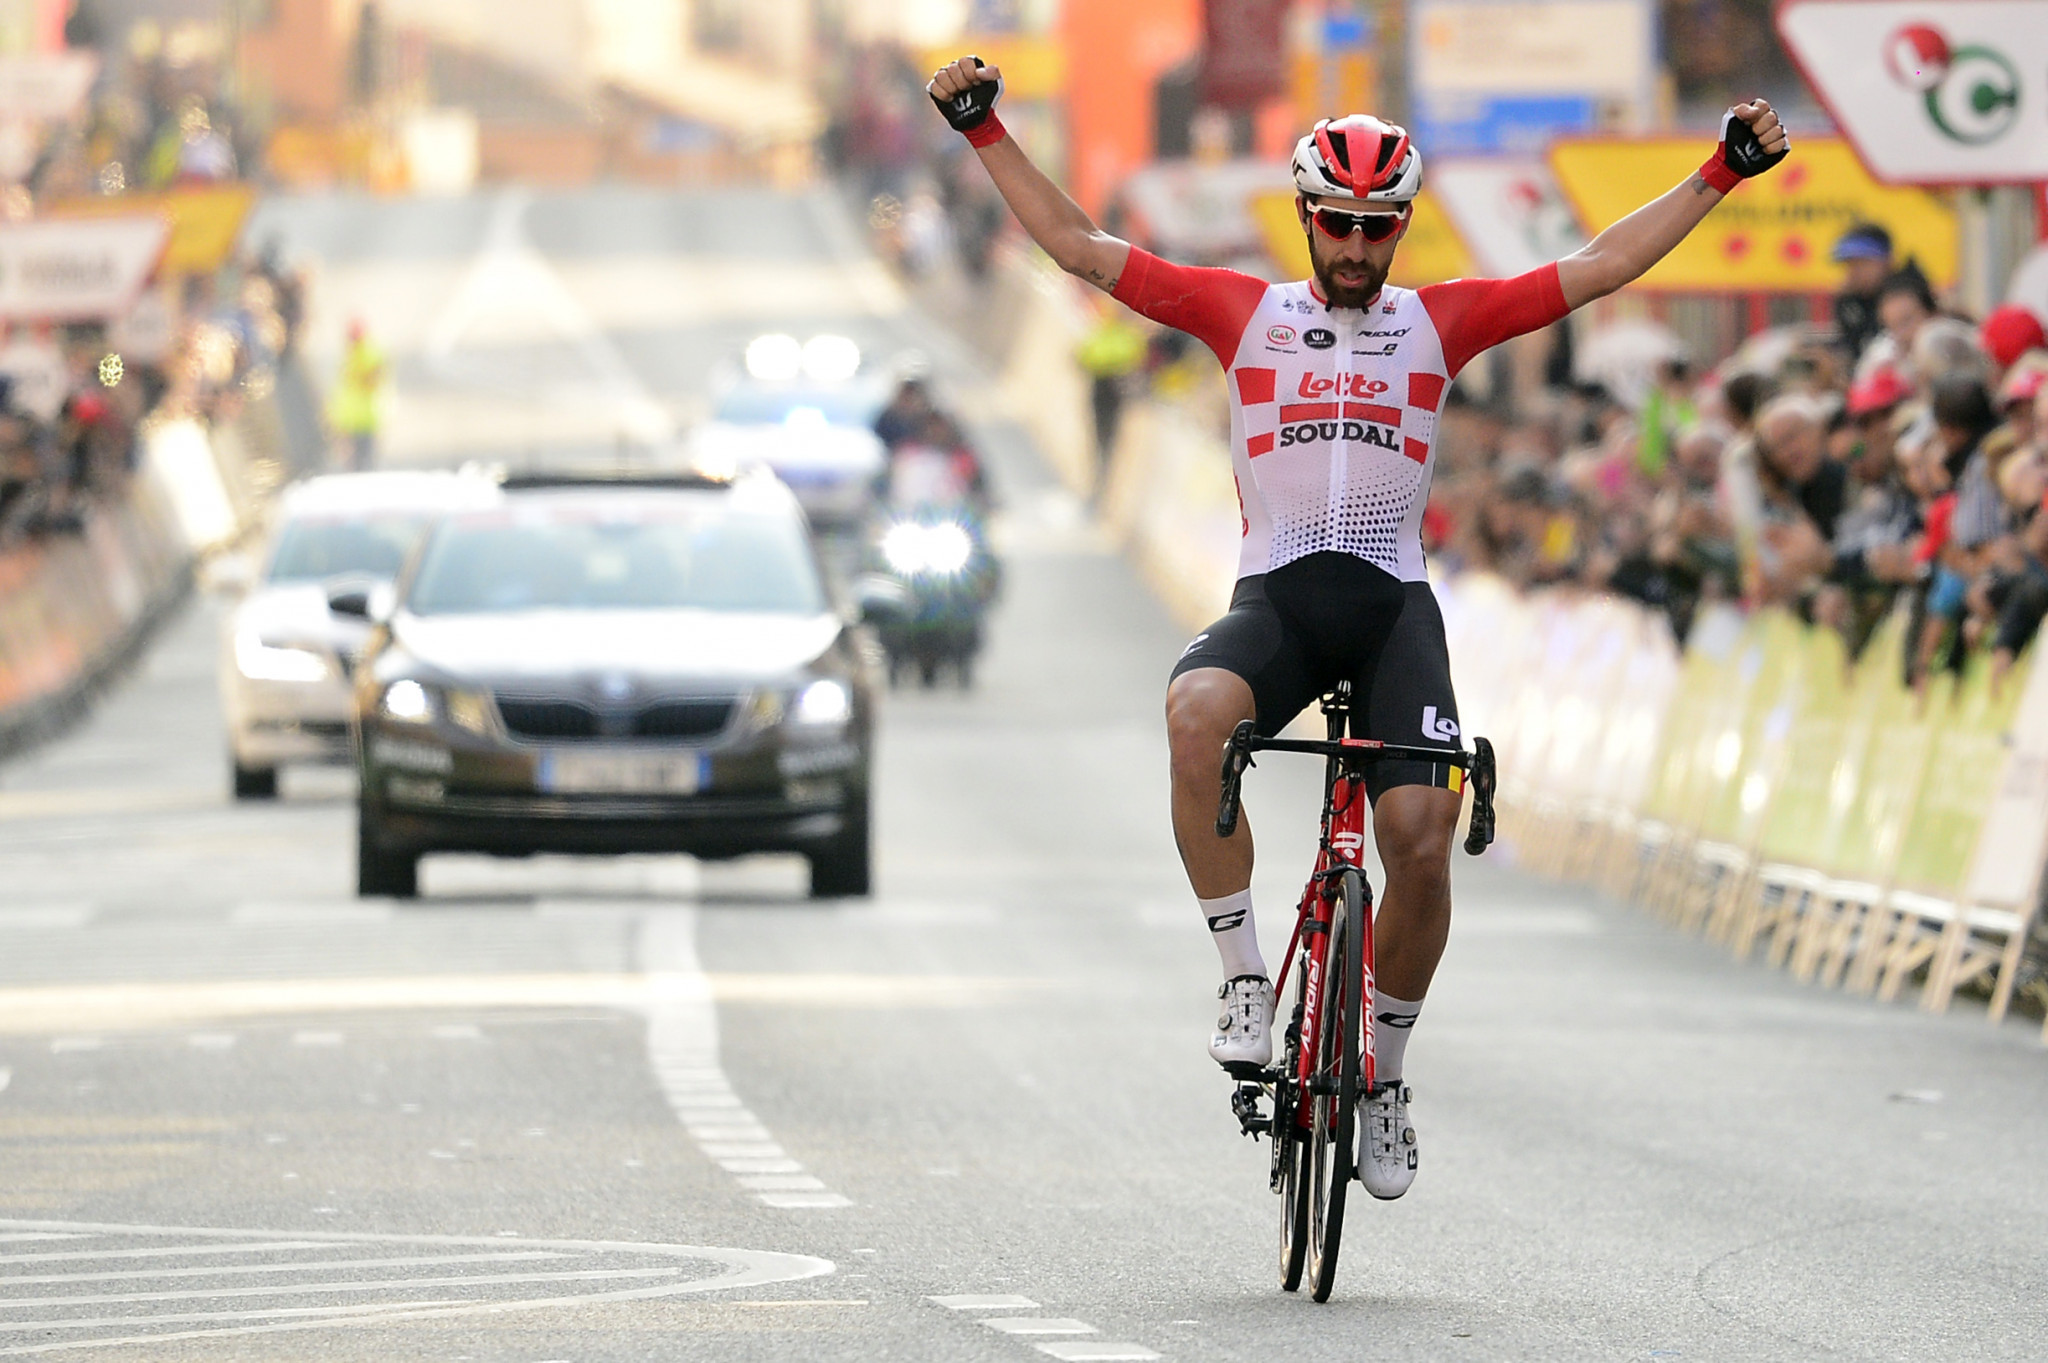 De Gendt wins opening stage of Volta a Catalunya after long range solo attack